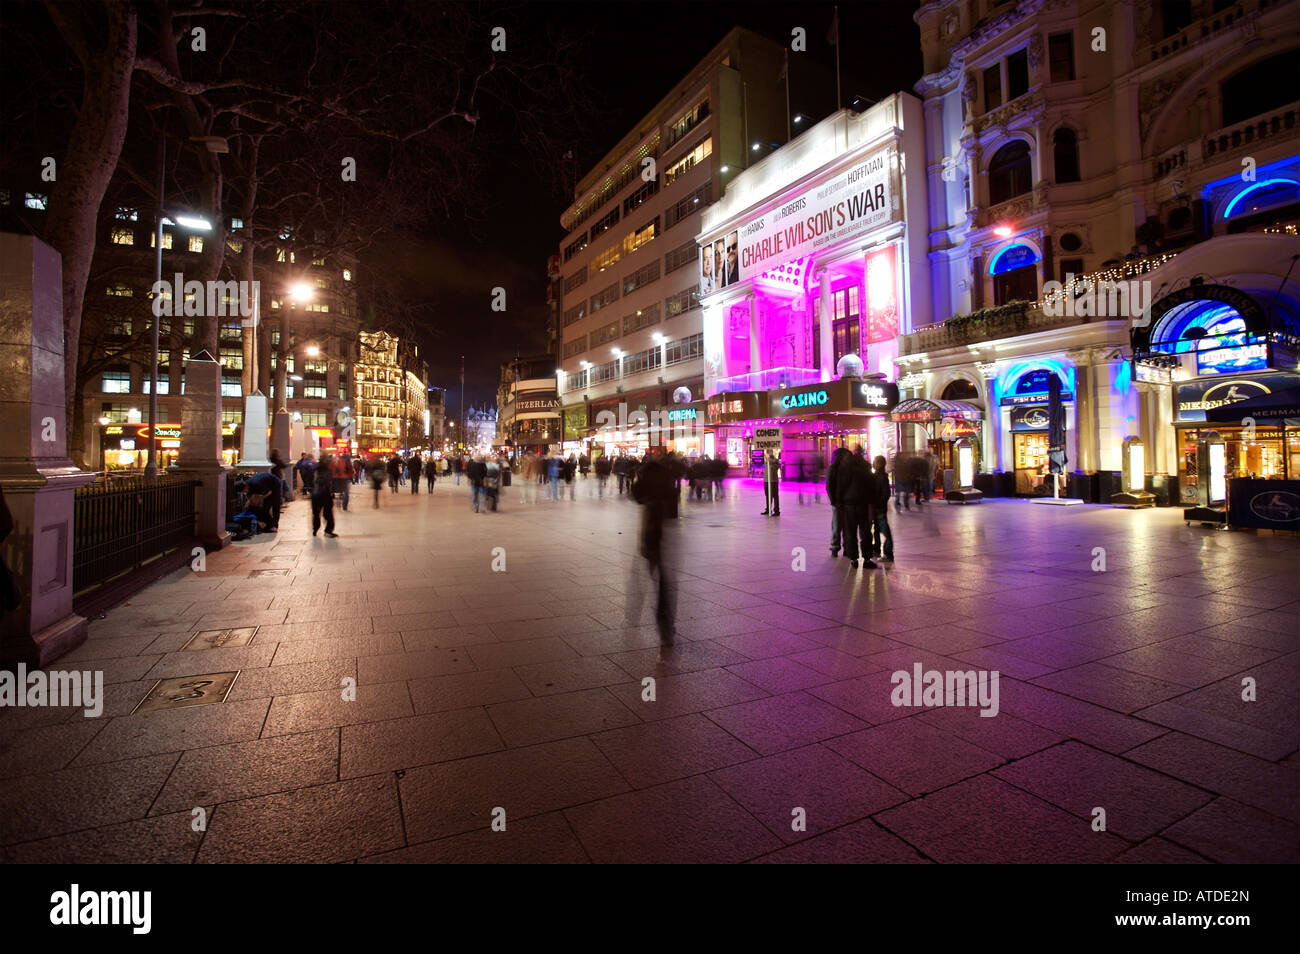 Leicester Square, London at night - Stock Image